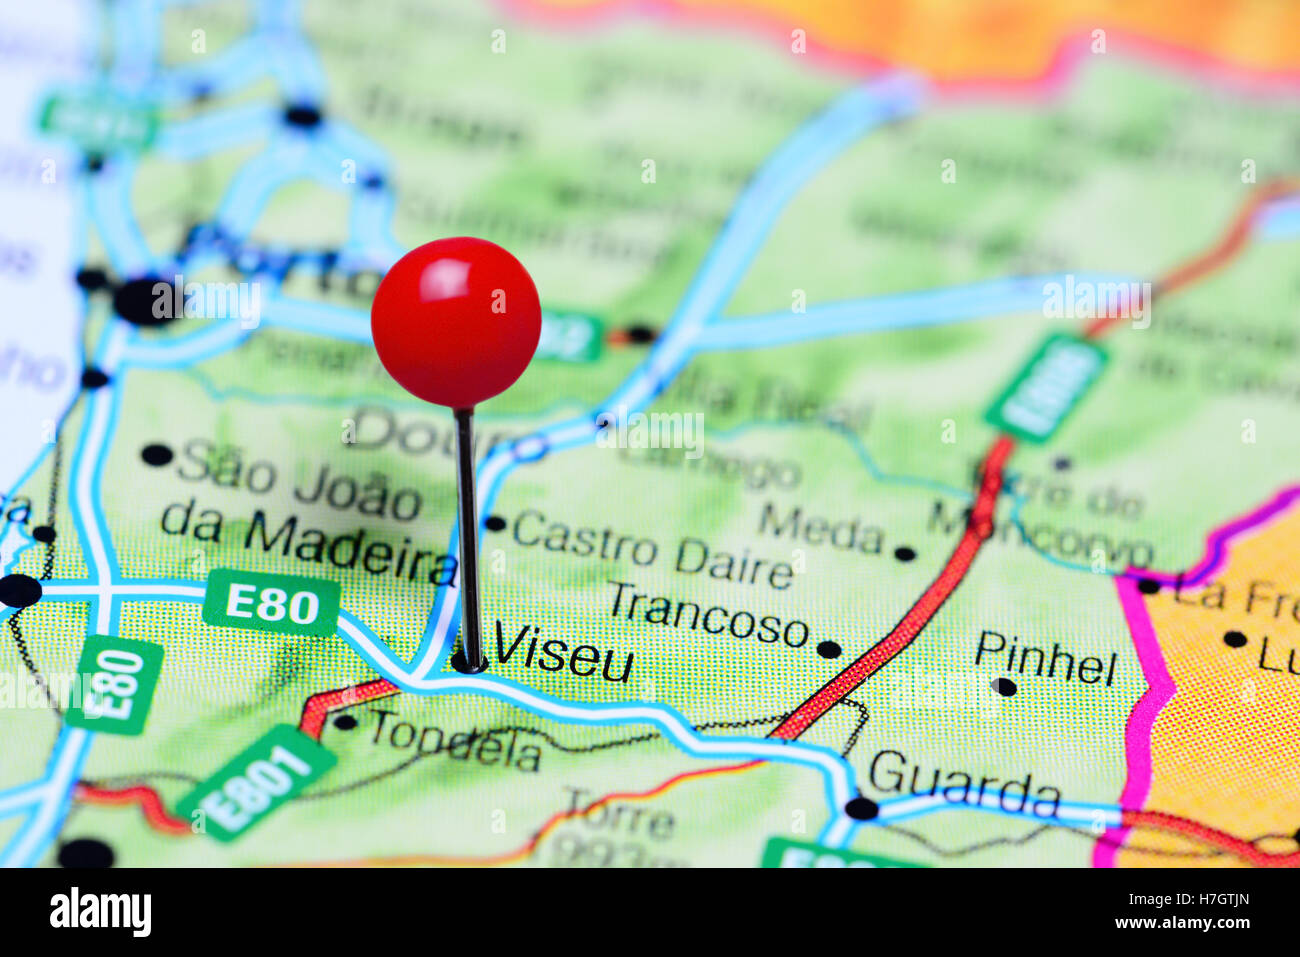 Viseu Pinned On A Map Of Portugal Stock Photo Royalty Free Image - Portugal map viseu